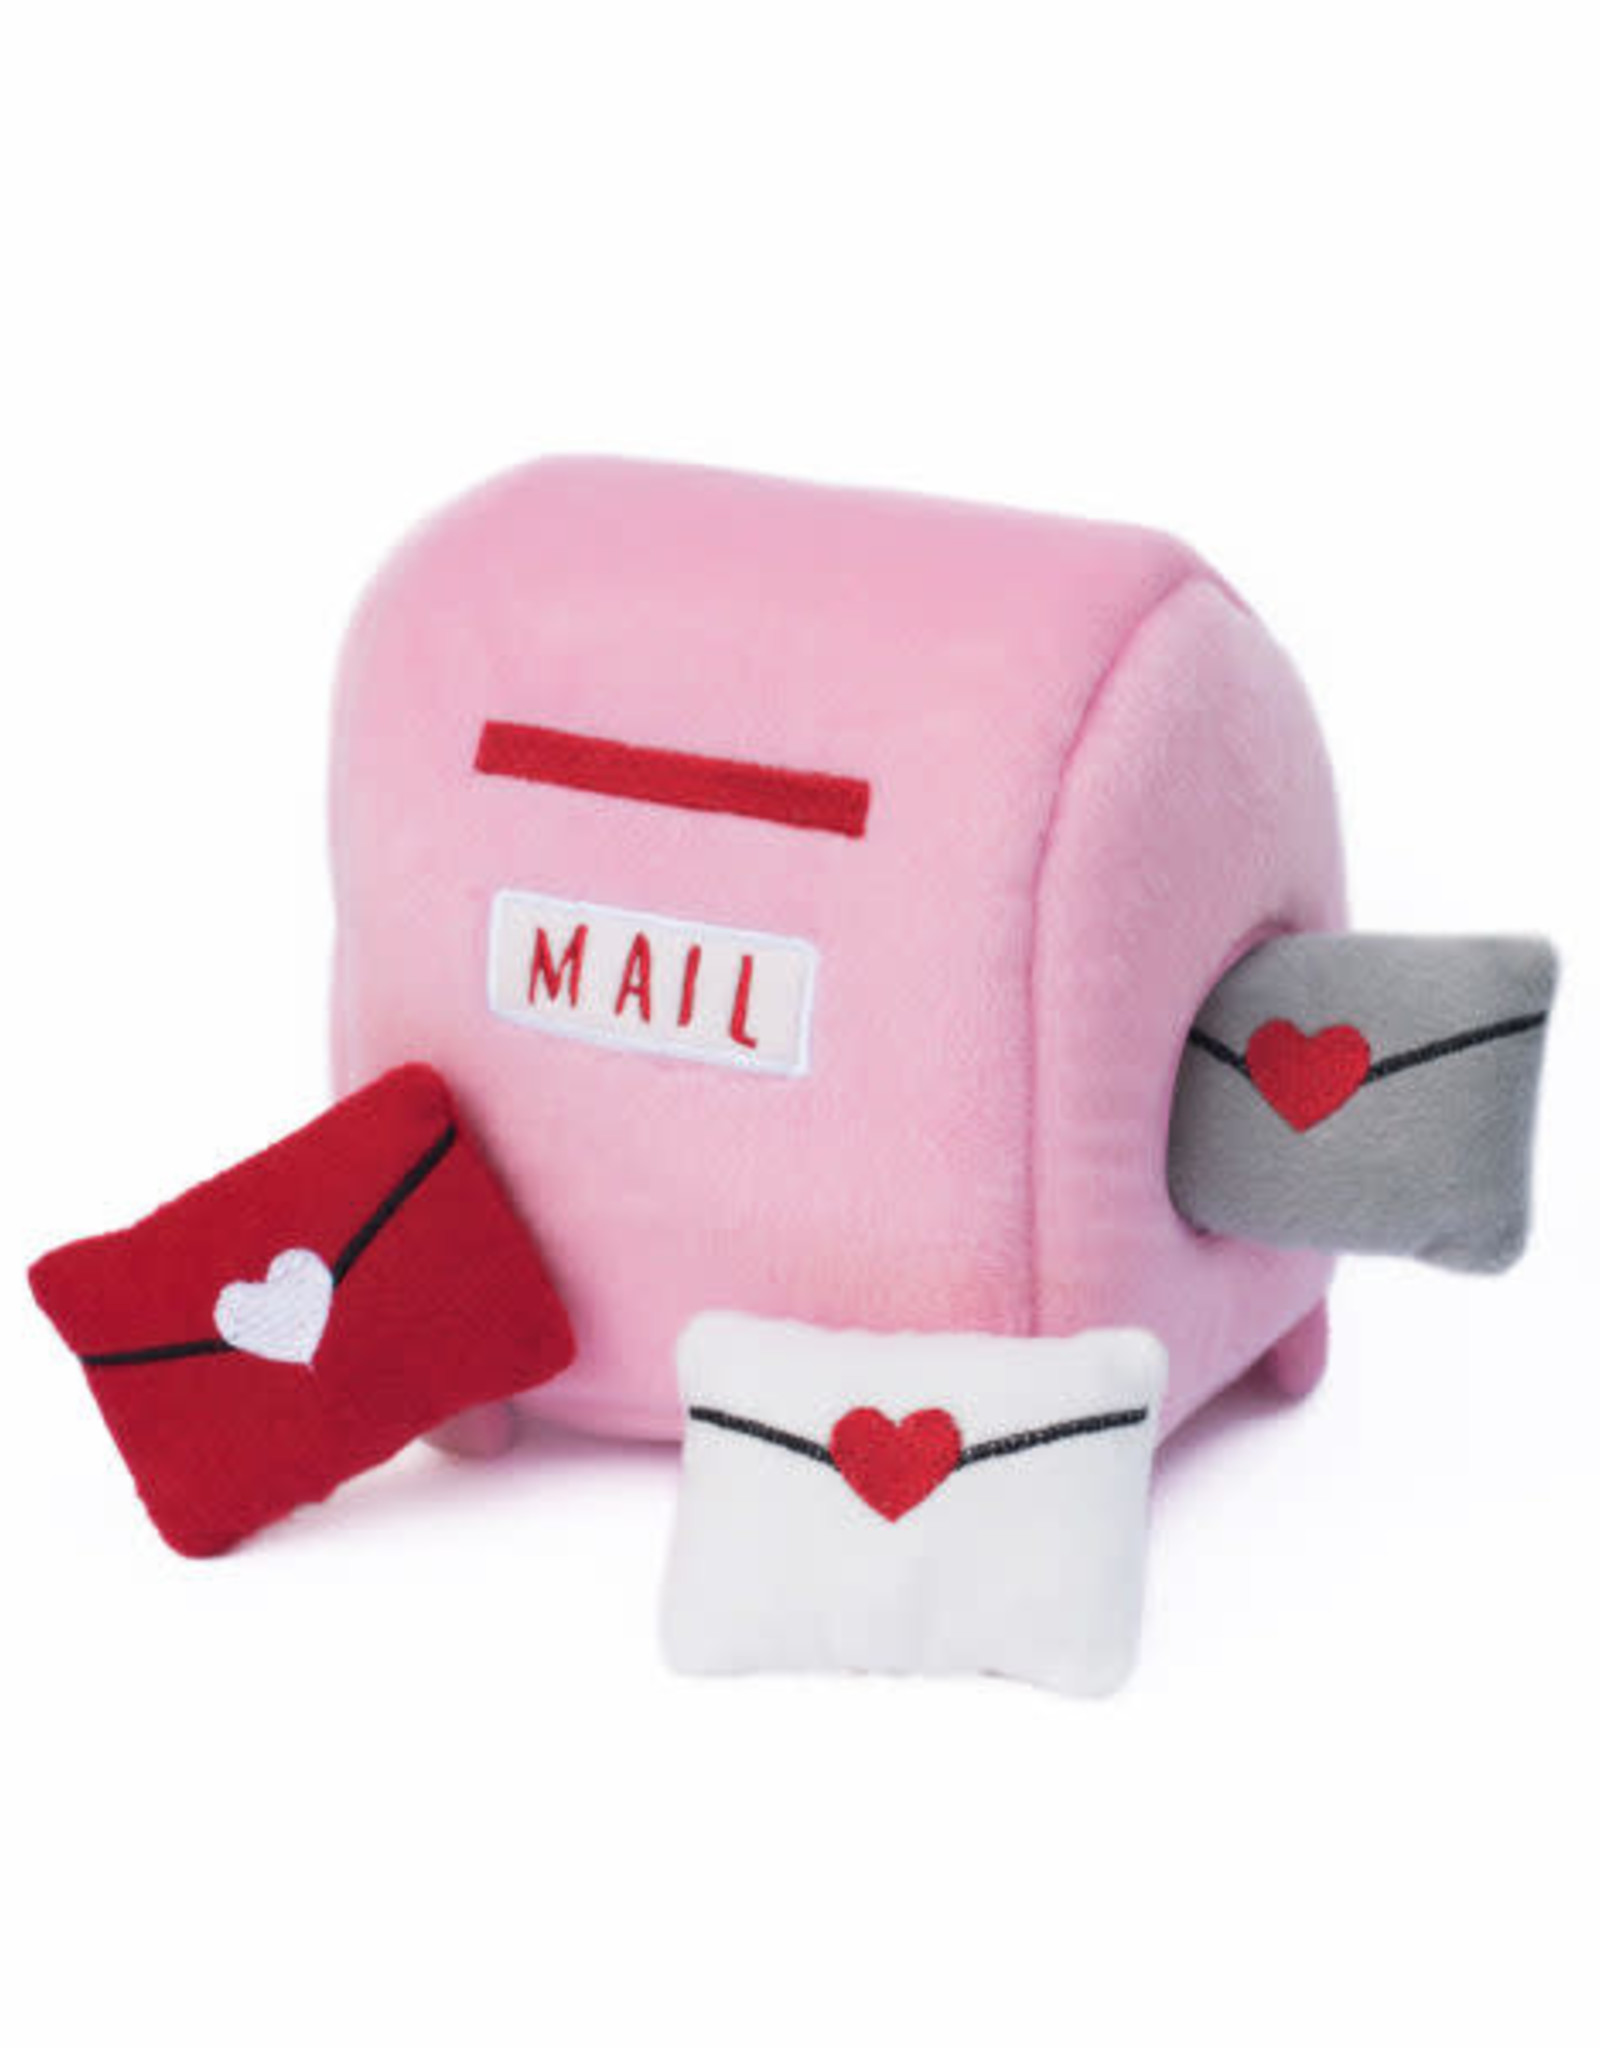 ZippyPaws Zippy Paws Mailbox and Love Letters Burrow Toy